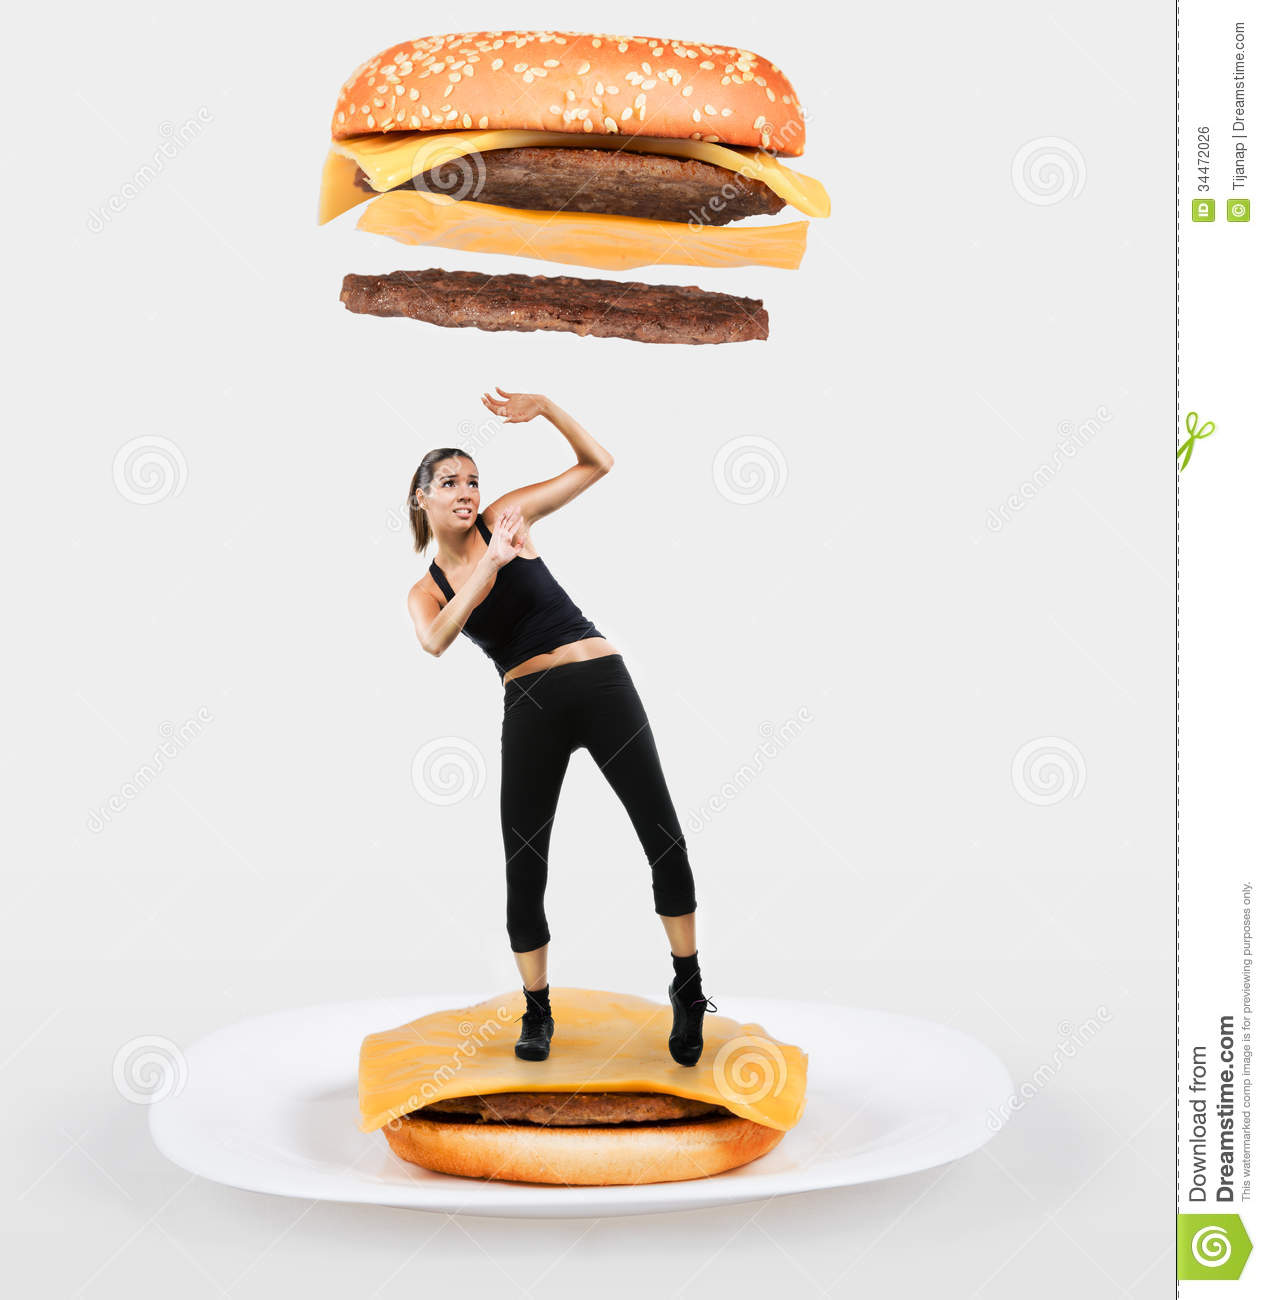 Large cheeseburger falling on a fit woman